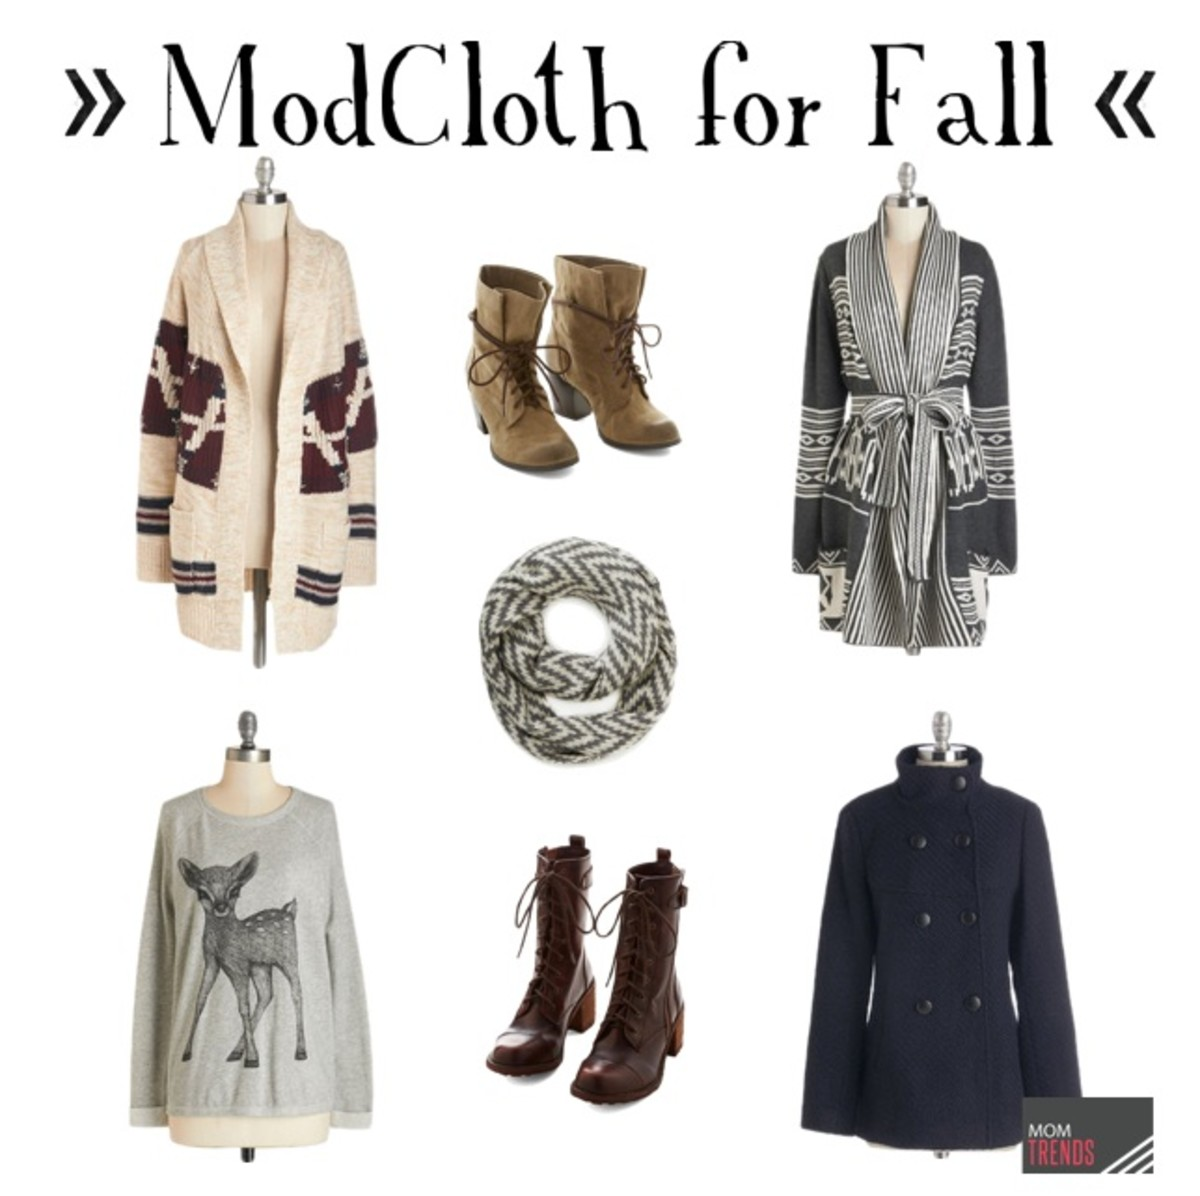 ModCloth for Fall